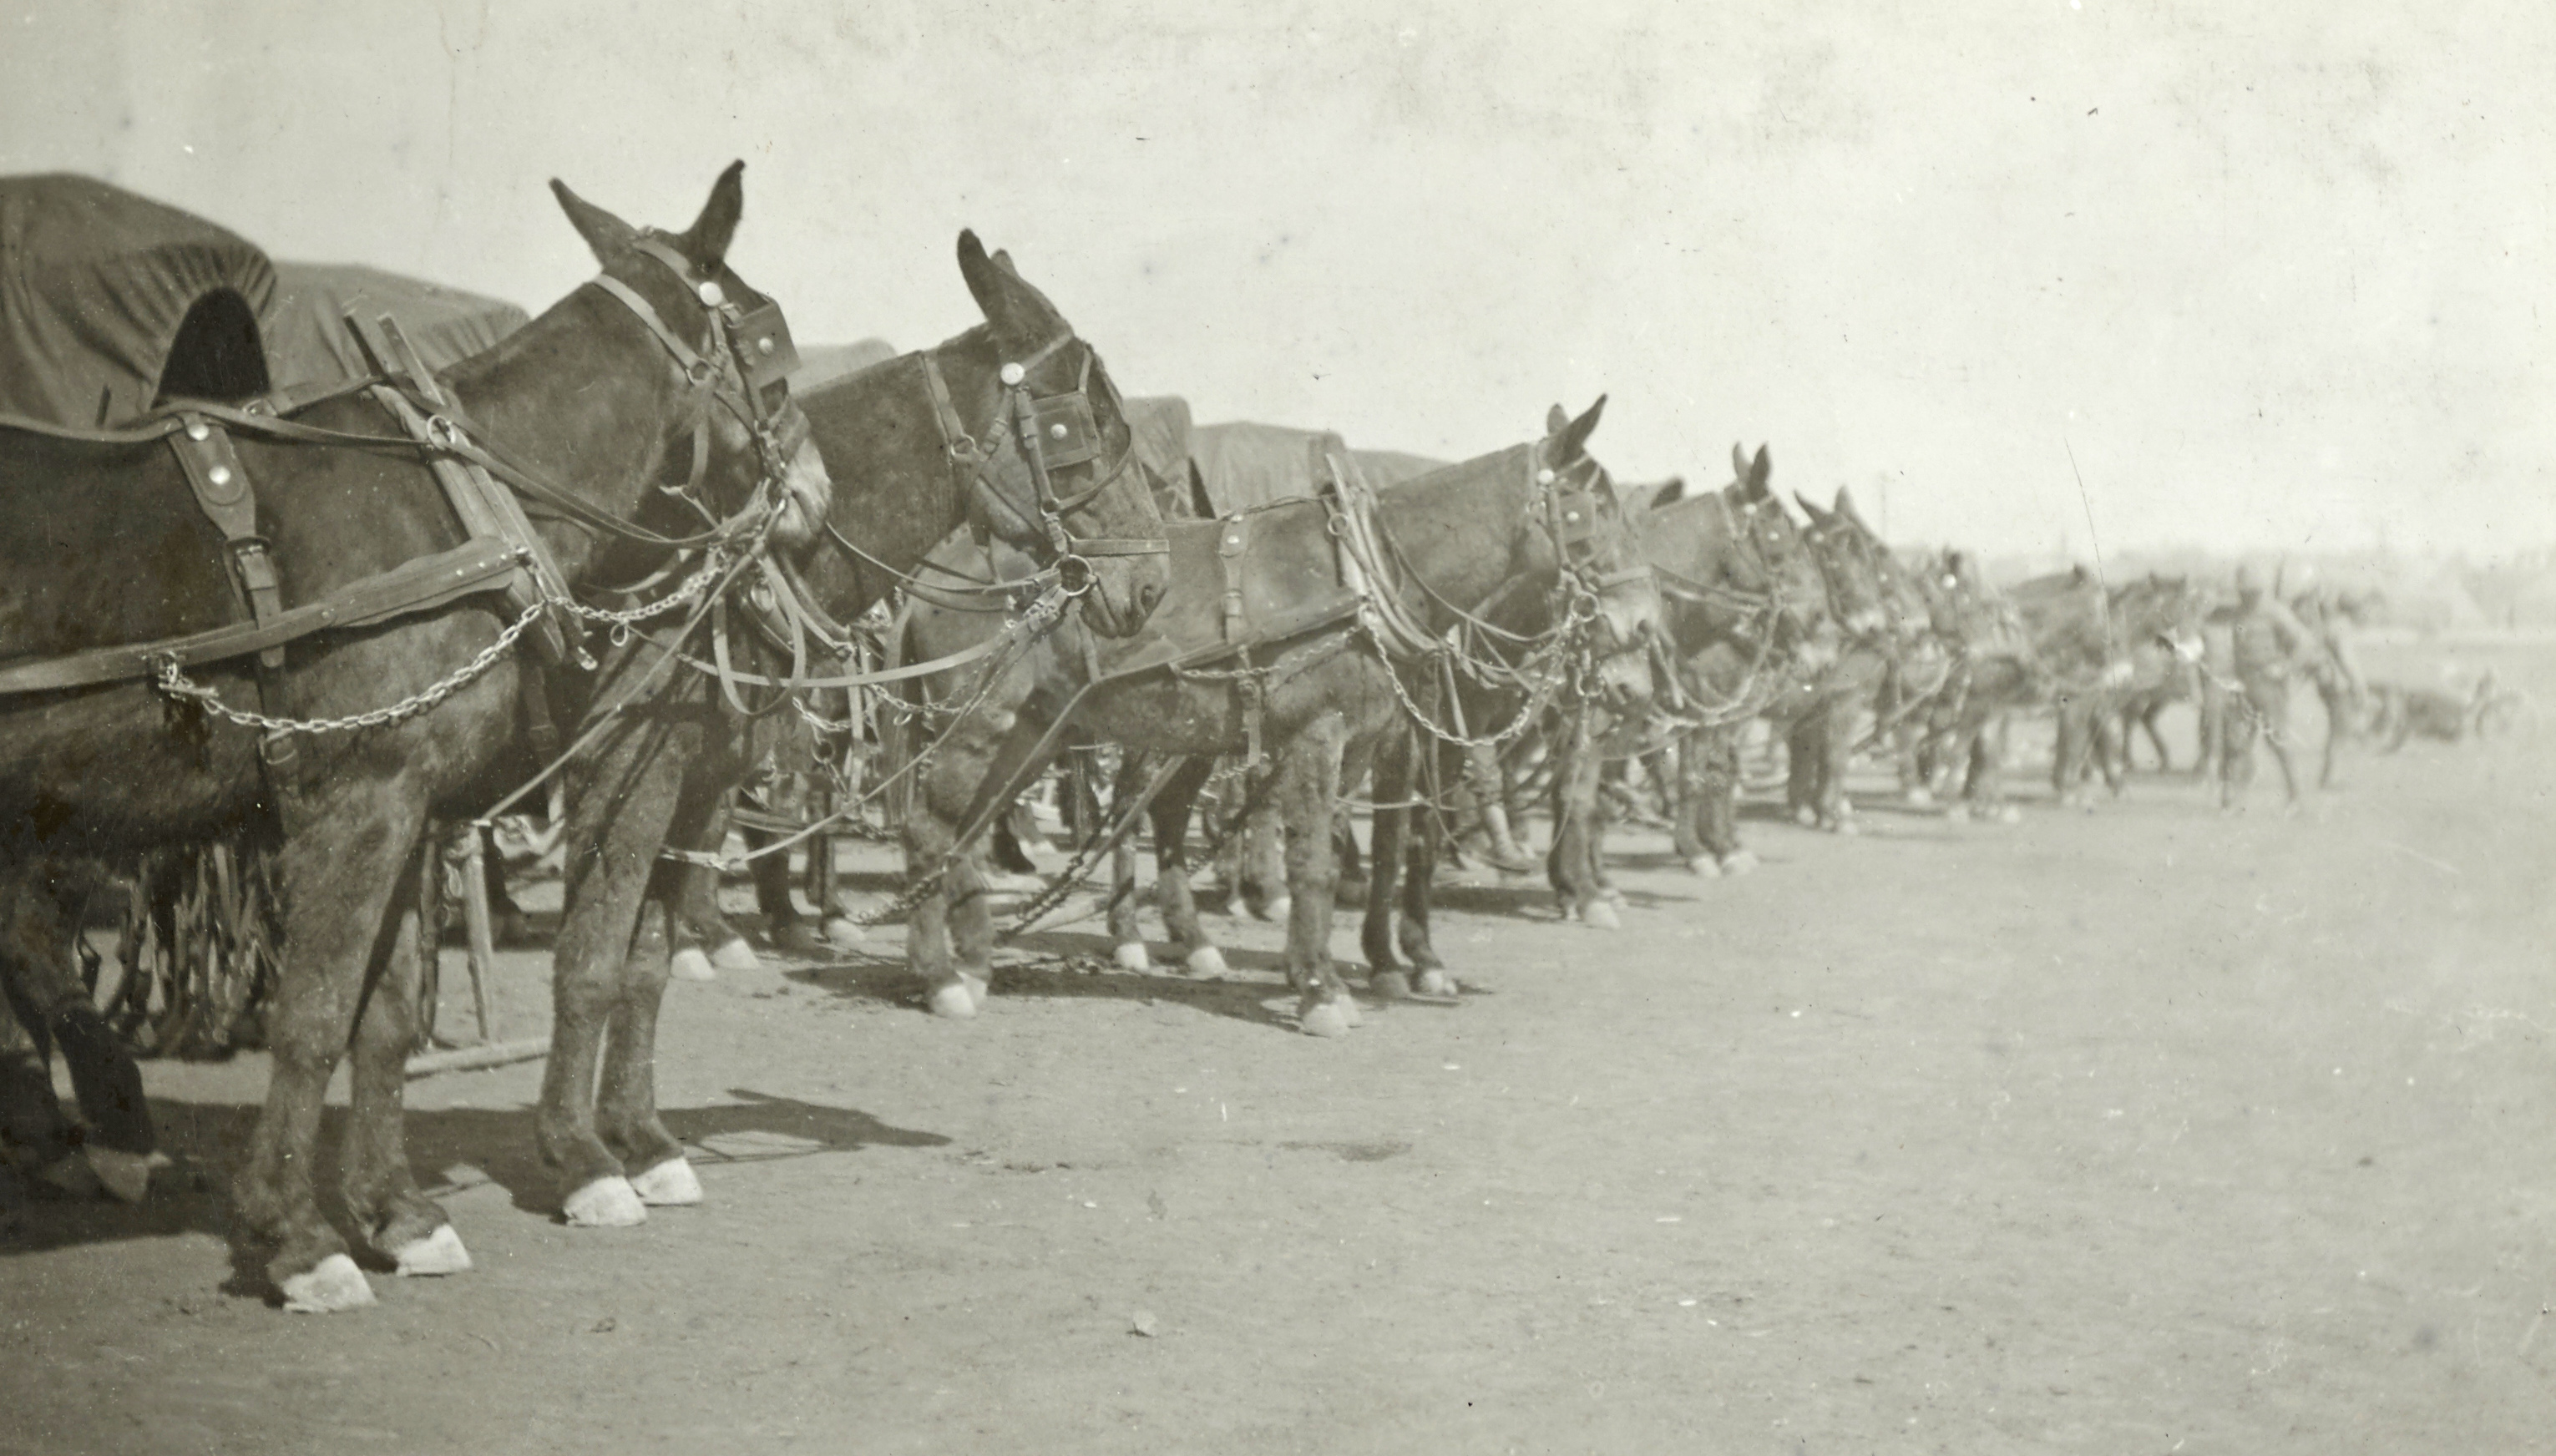 inspection of mules and wagons Camp Devens MA